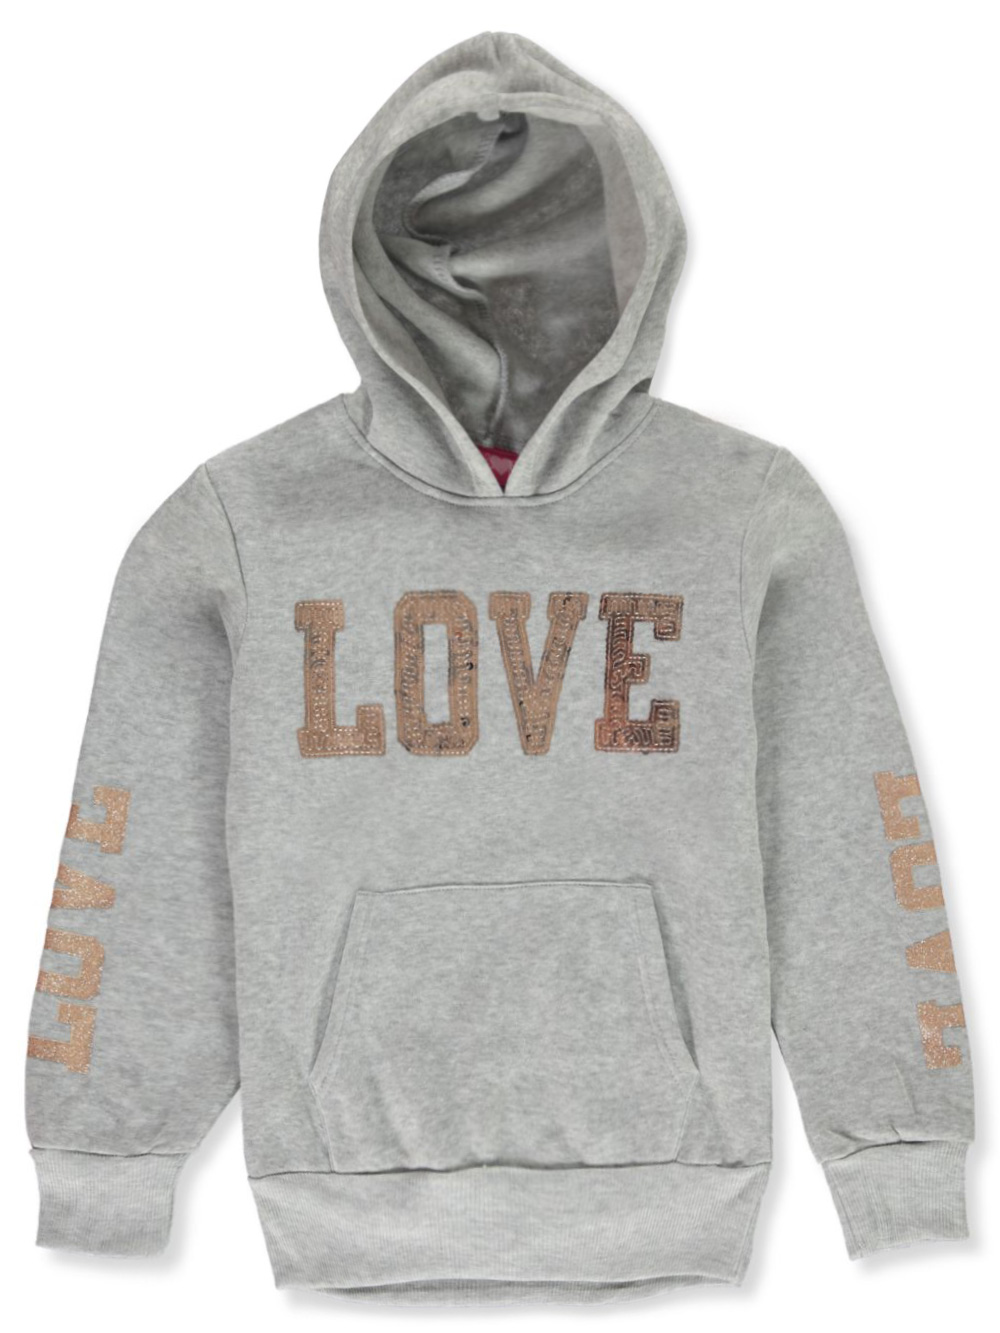 Size 12 Hoodies for Girls